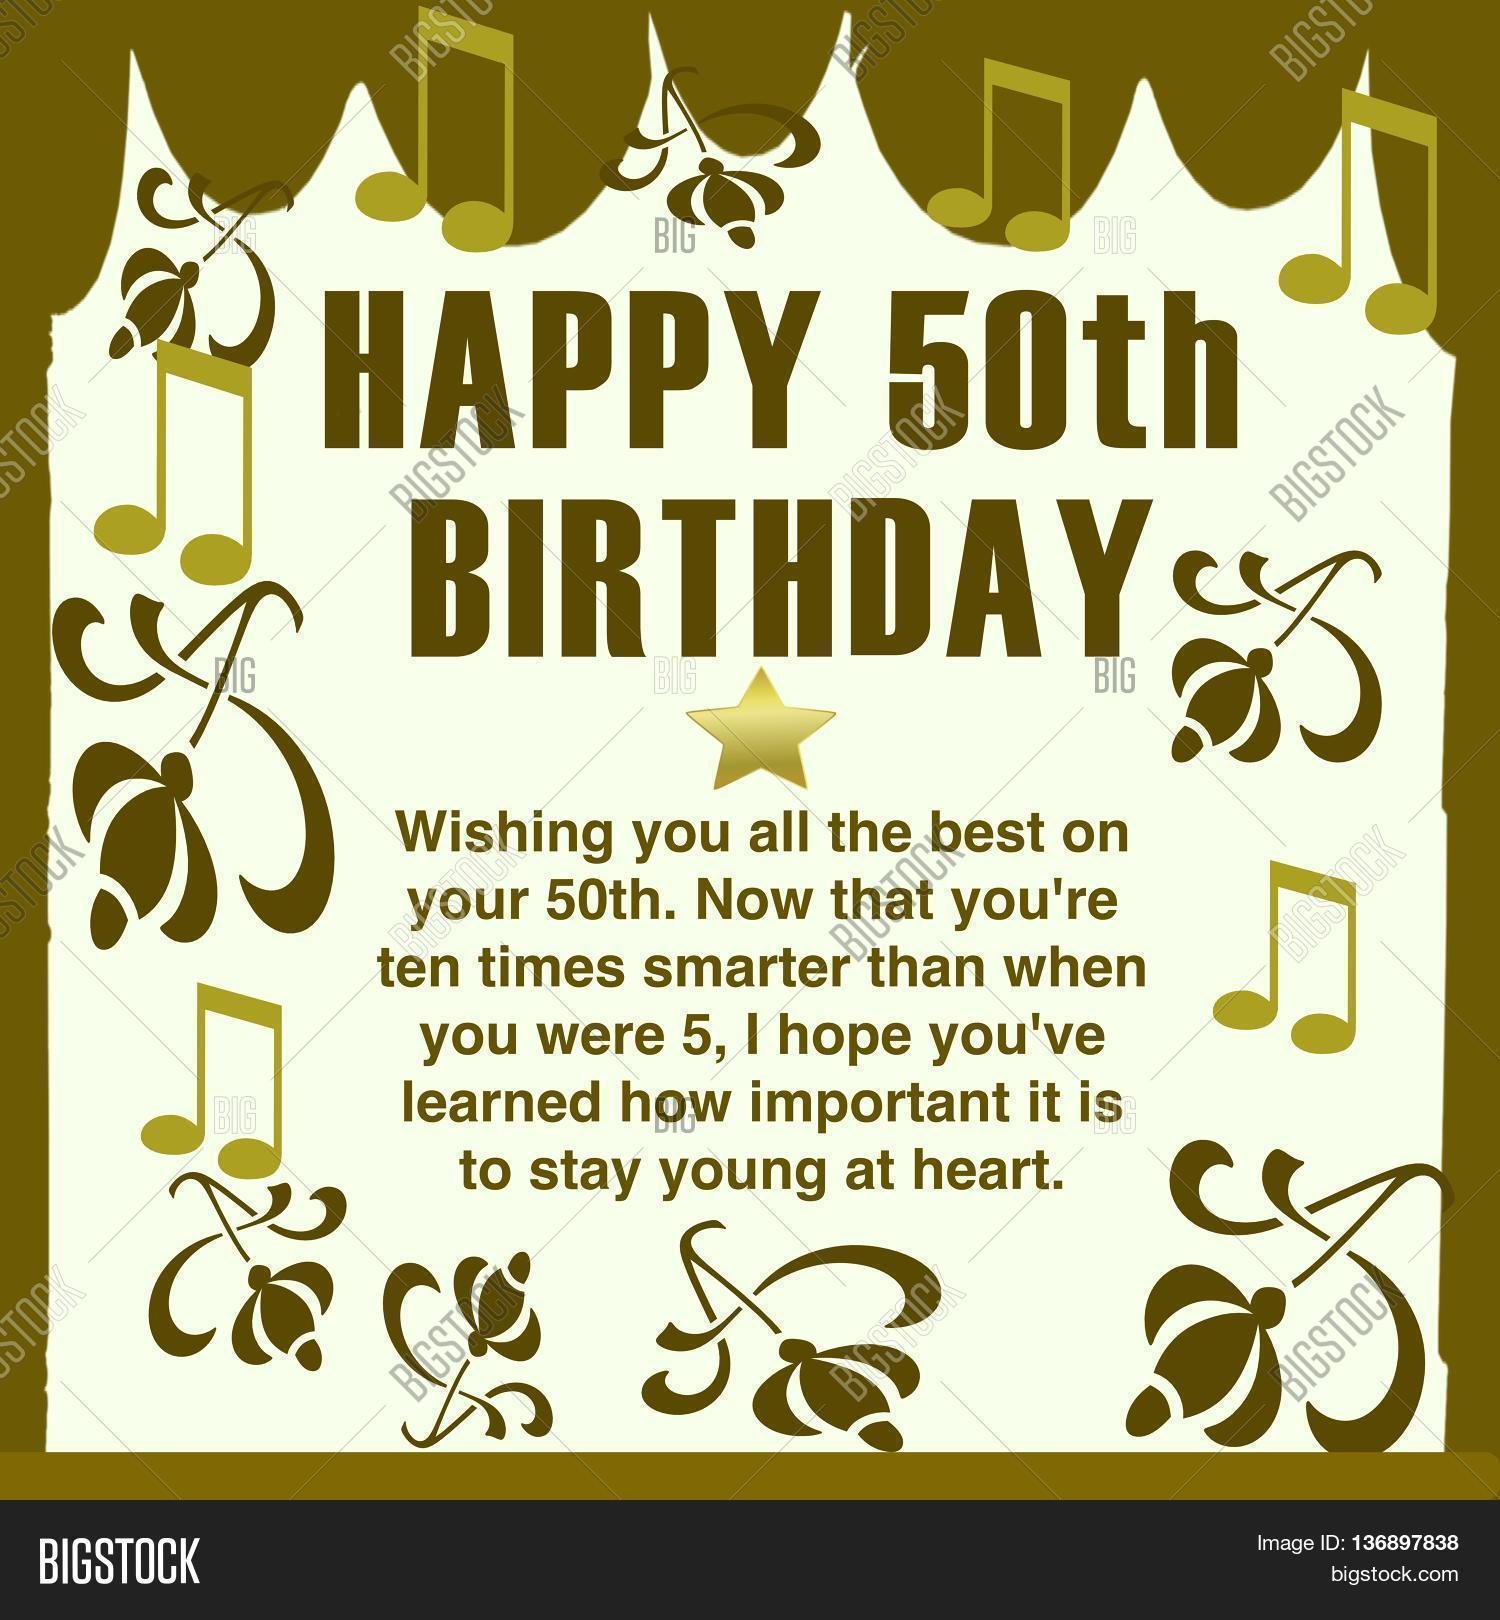 50 Birthday Quotes For Friend: Happy 50th Birthday Wishes Family, Image & Photo